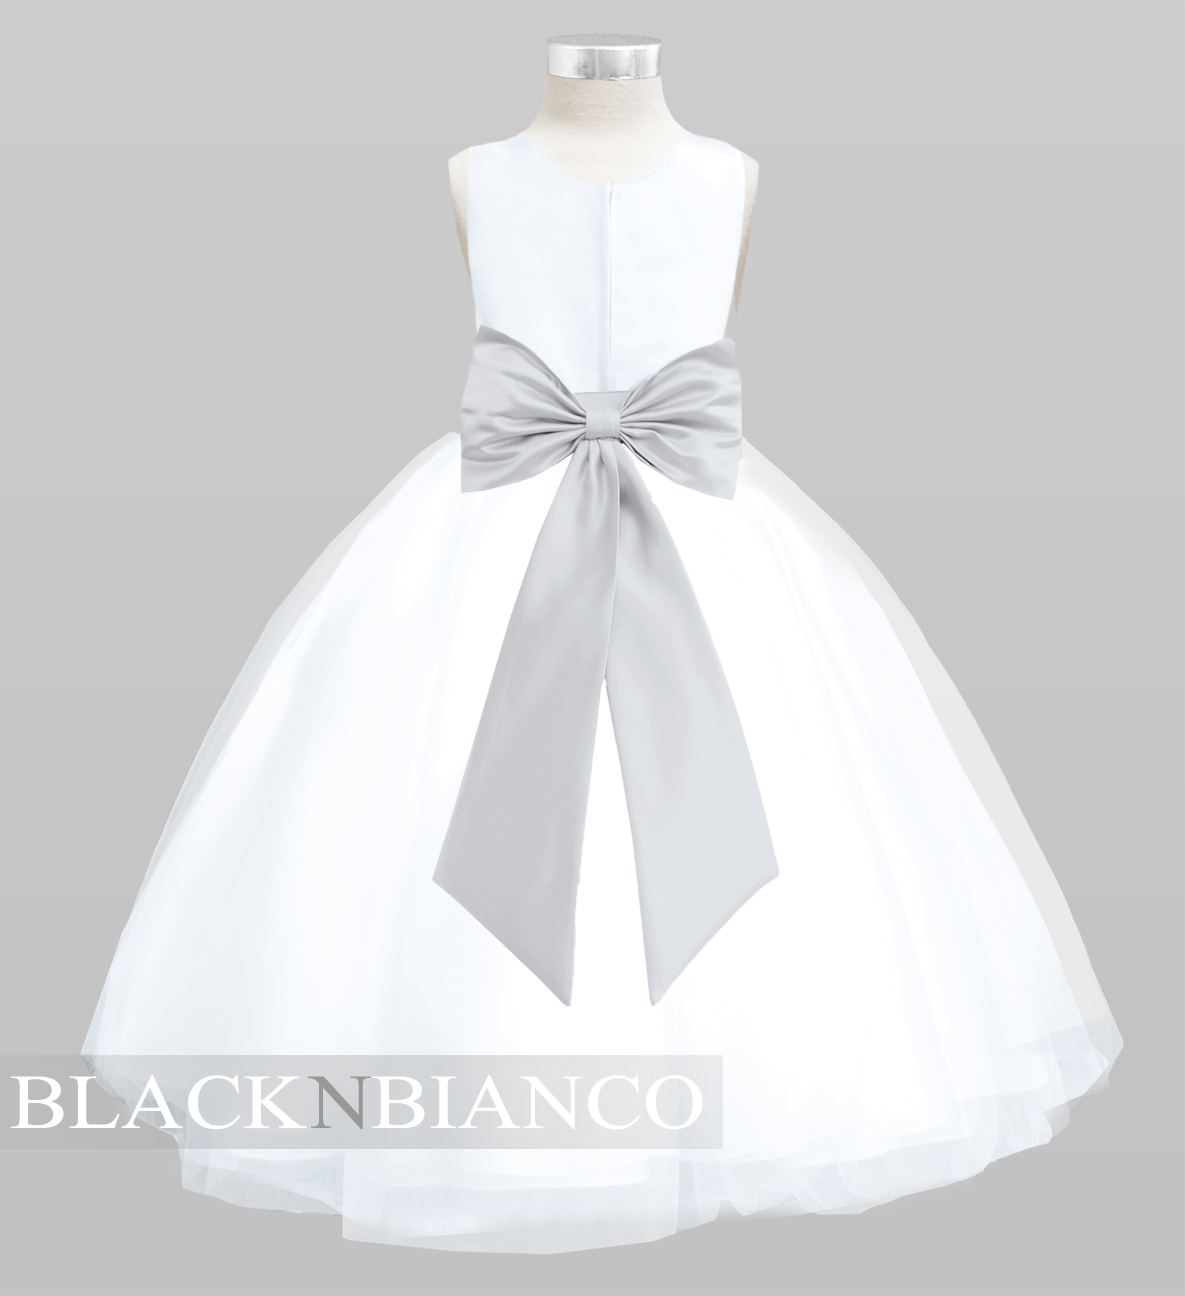 Flower girl dresses black n bianco blog white flower girl dress with a silver bow mightylinksfo